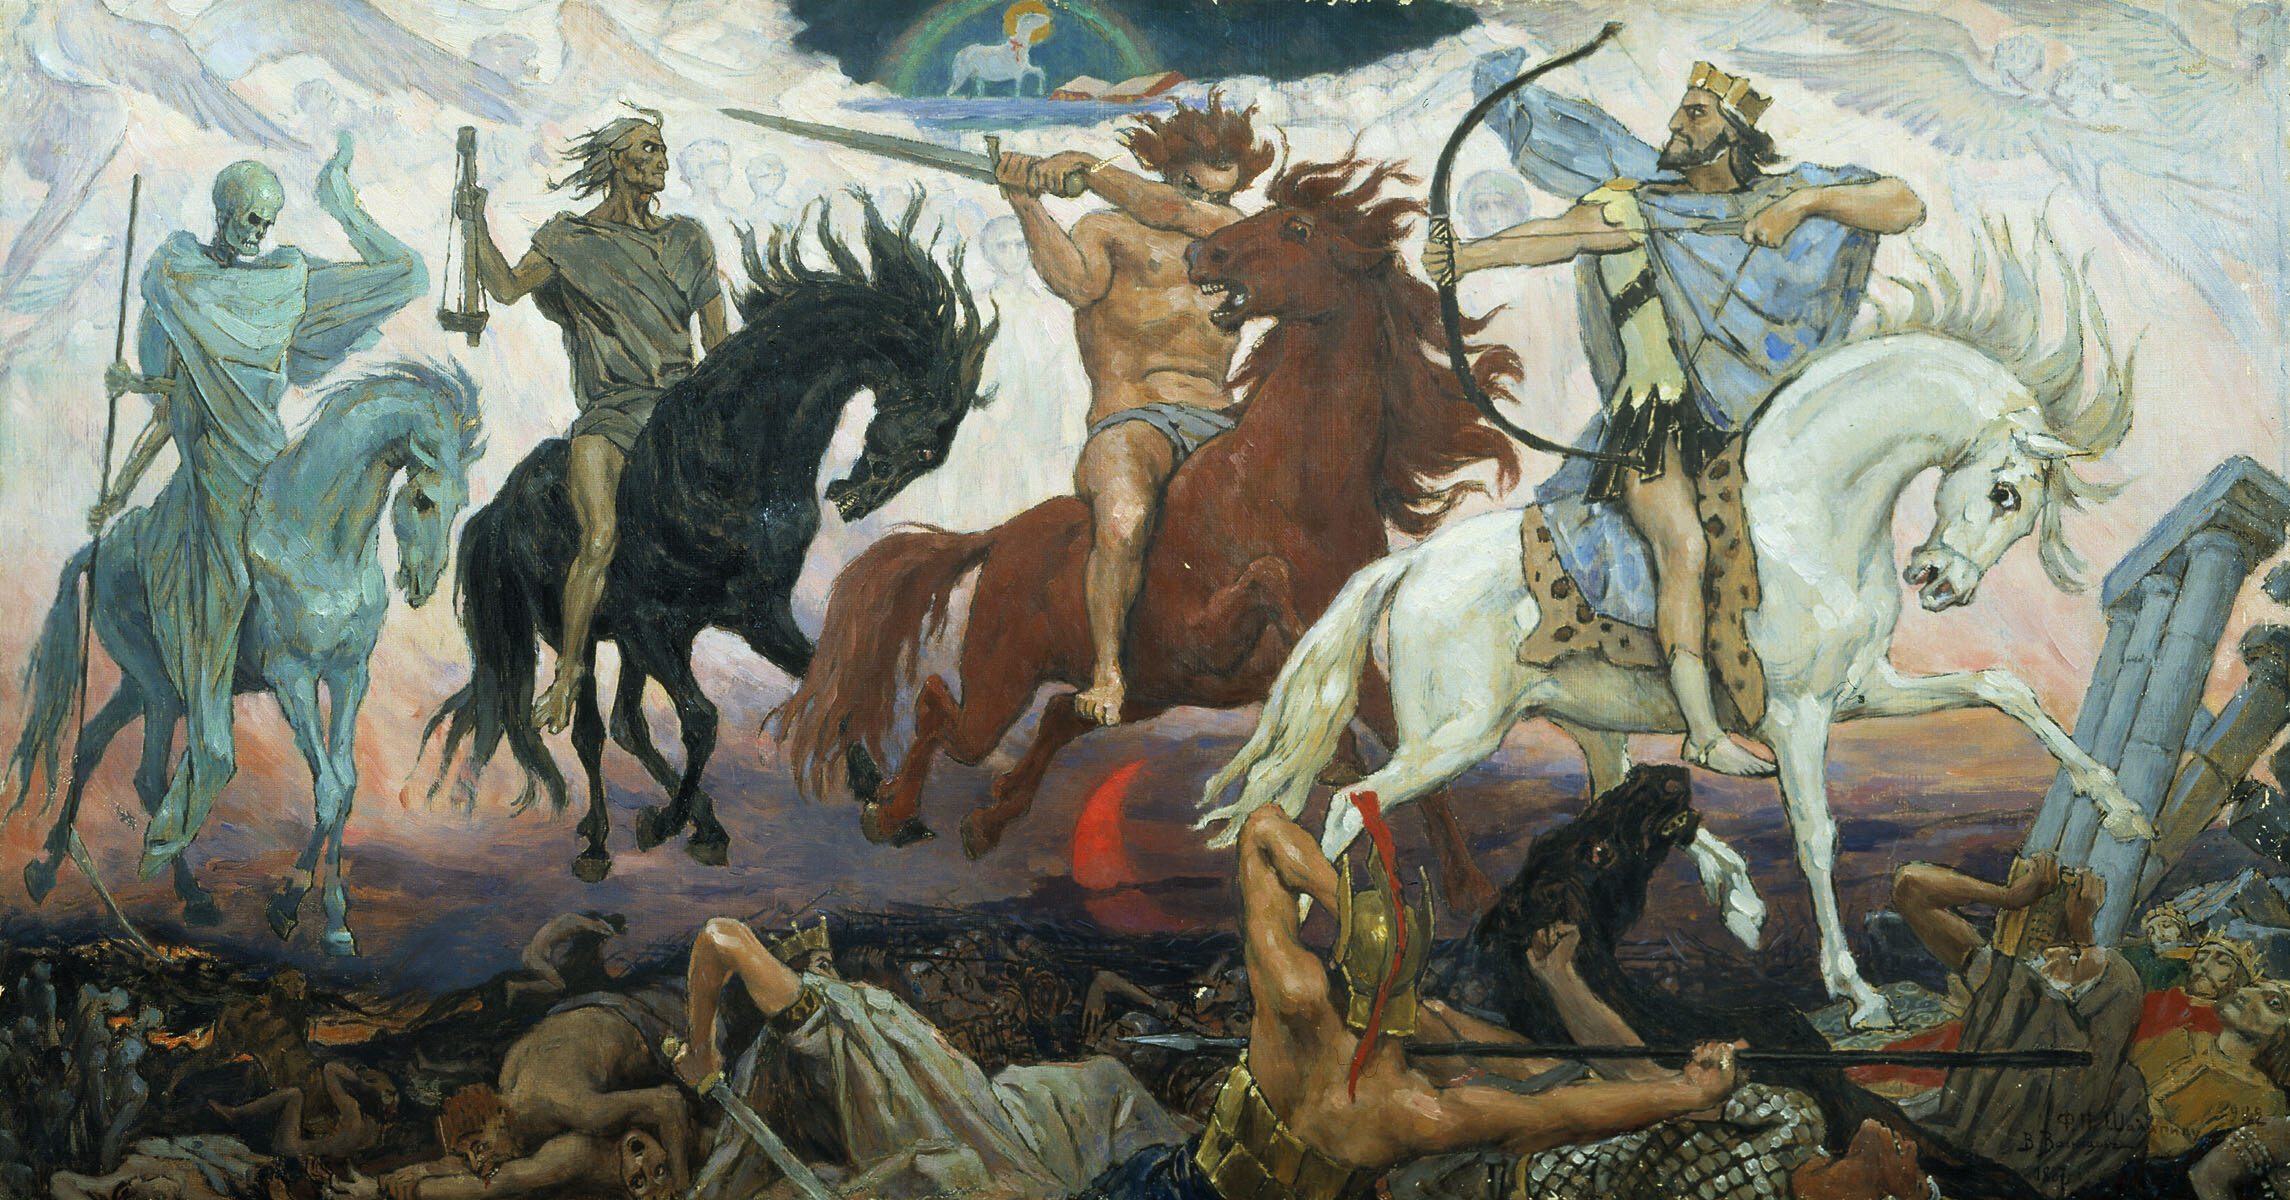 A painting of the Four Horsemen of the Apocalypse